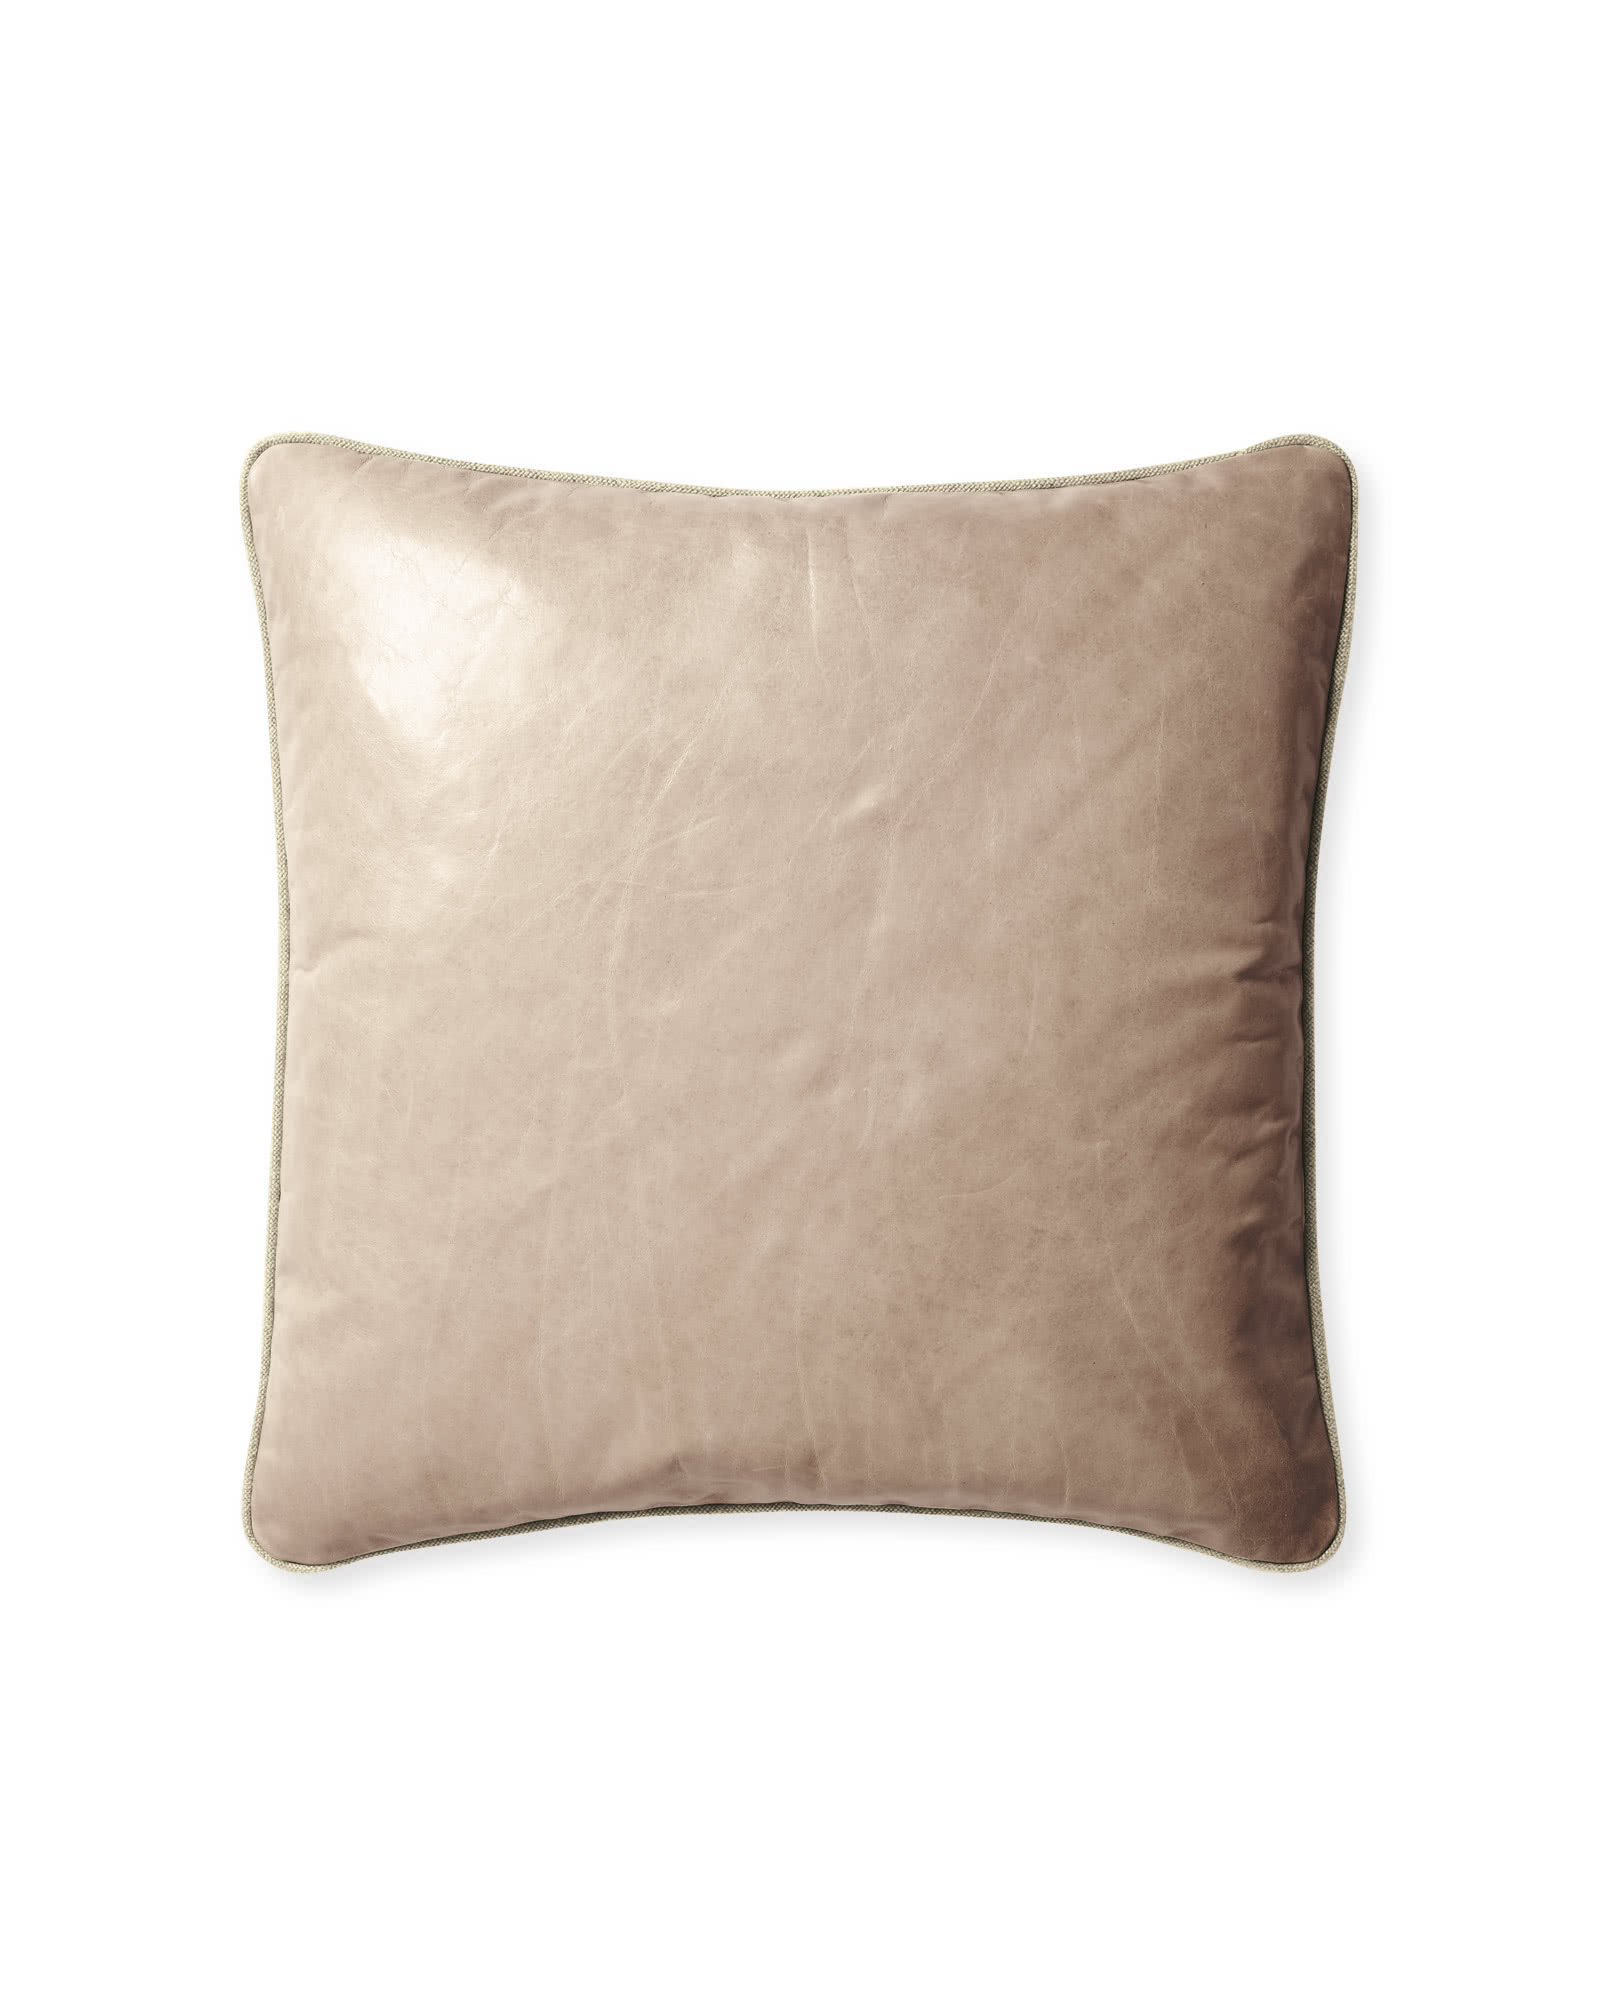 Leather Pillow Cover Serena Amp Lily